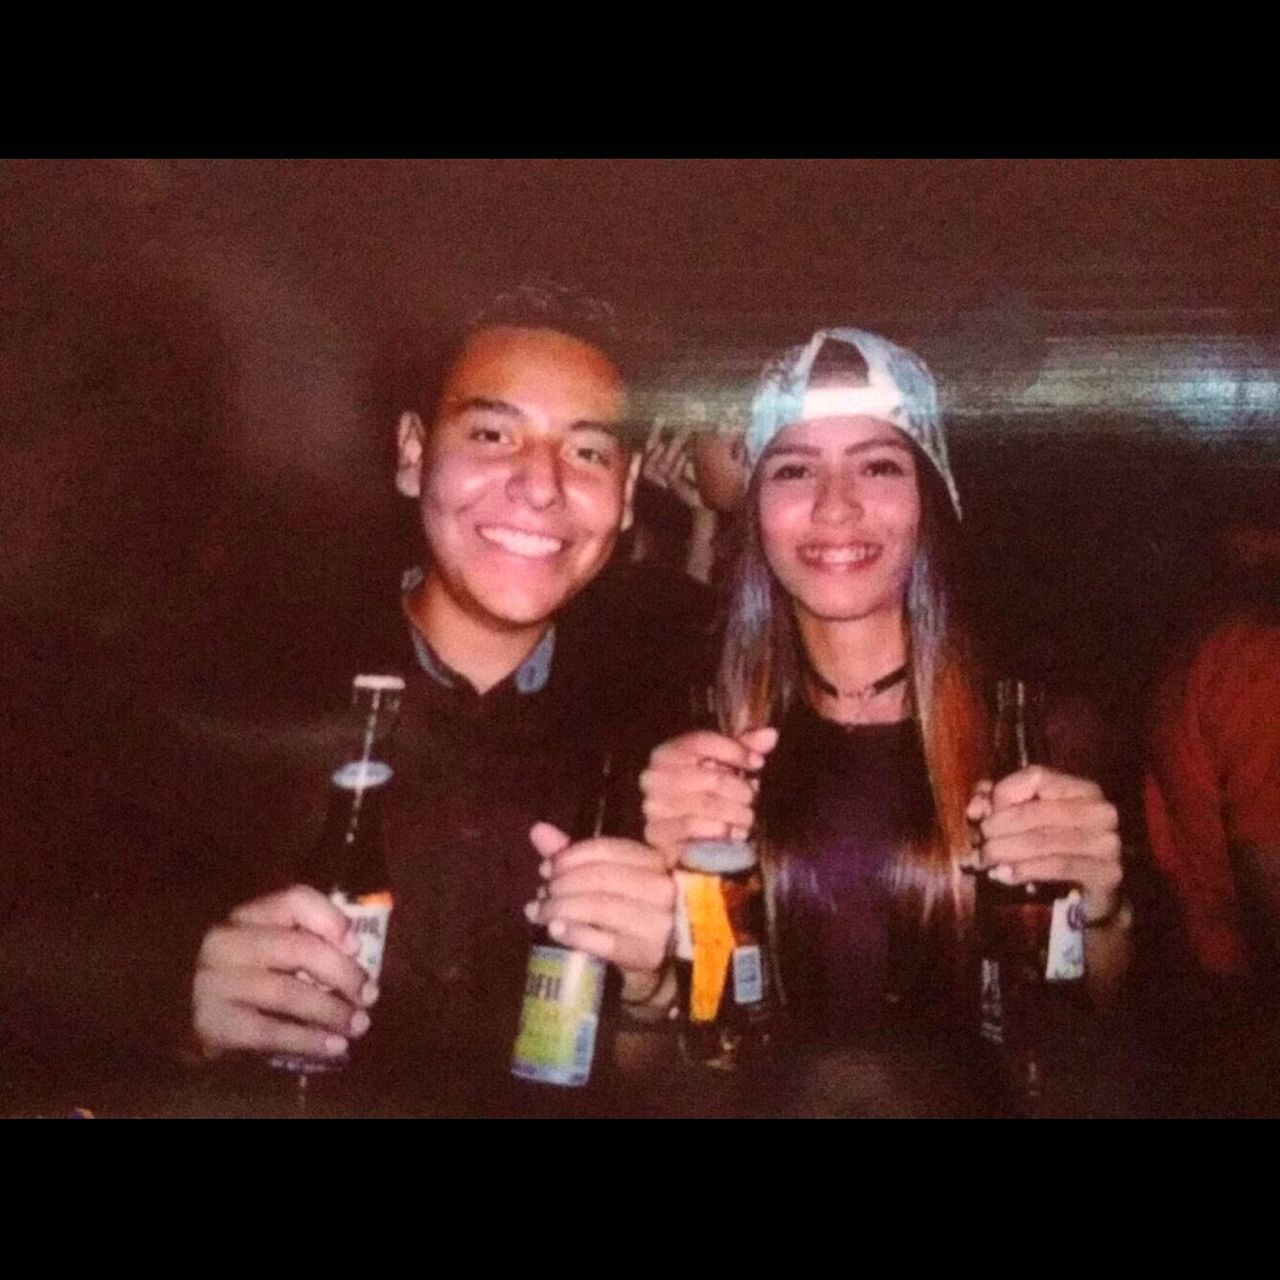 alcohol, drink, drinking, beer, food and drink, refreshment, happy hour, beer glass, beer - alcohol, smiling, looking at camera, bar counter, friendship, portrait, togetherness, bar - drink establishment, happiness, two people, indoors, night, young adult, young women